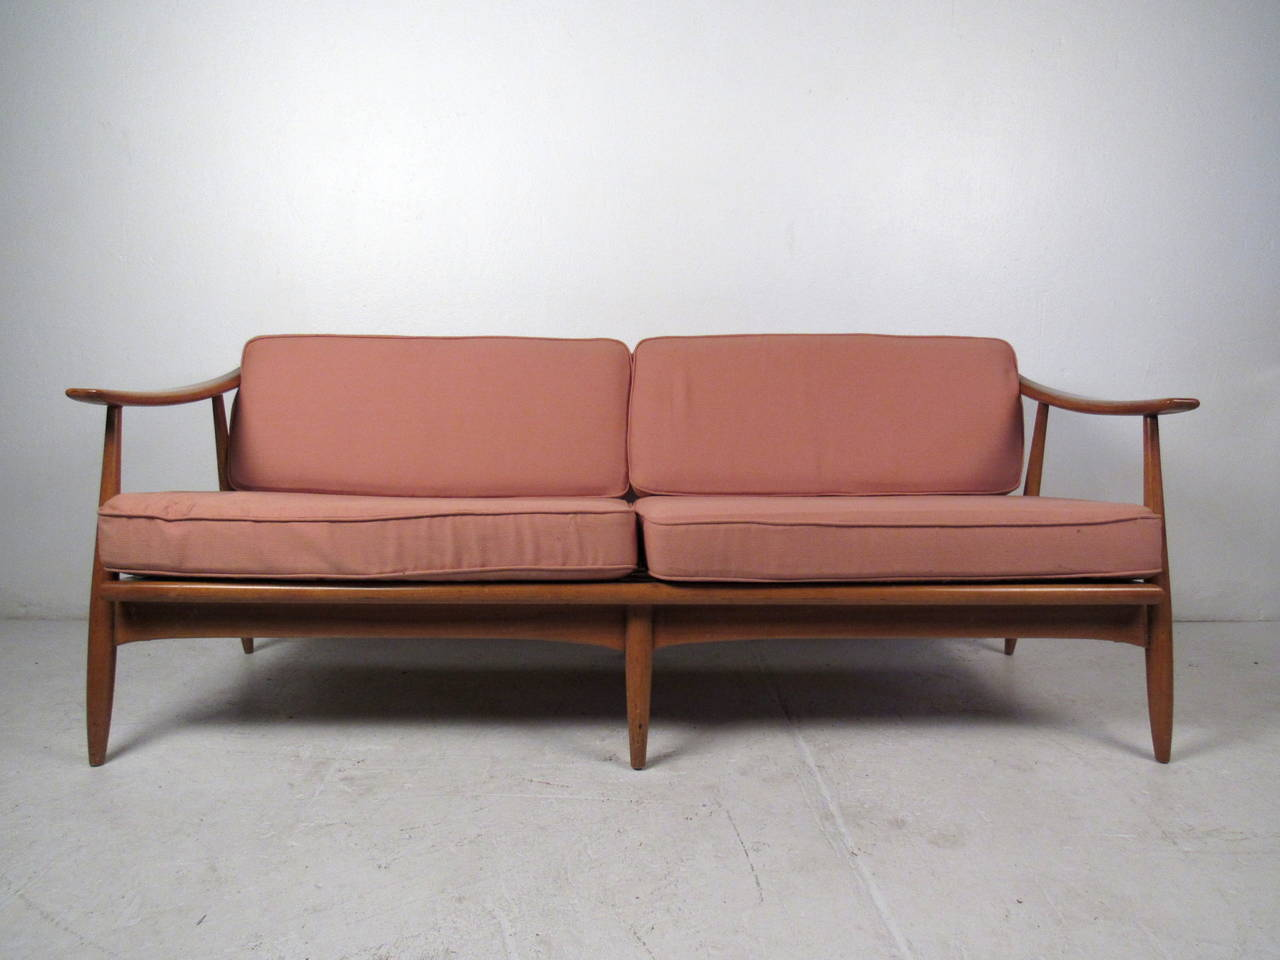 modern wood sofa furniture. mid century modern wood frame sofa 3 furniture